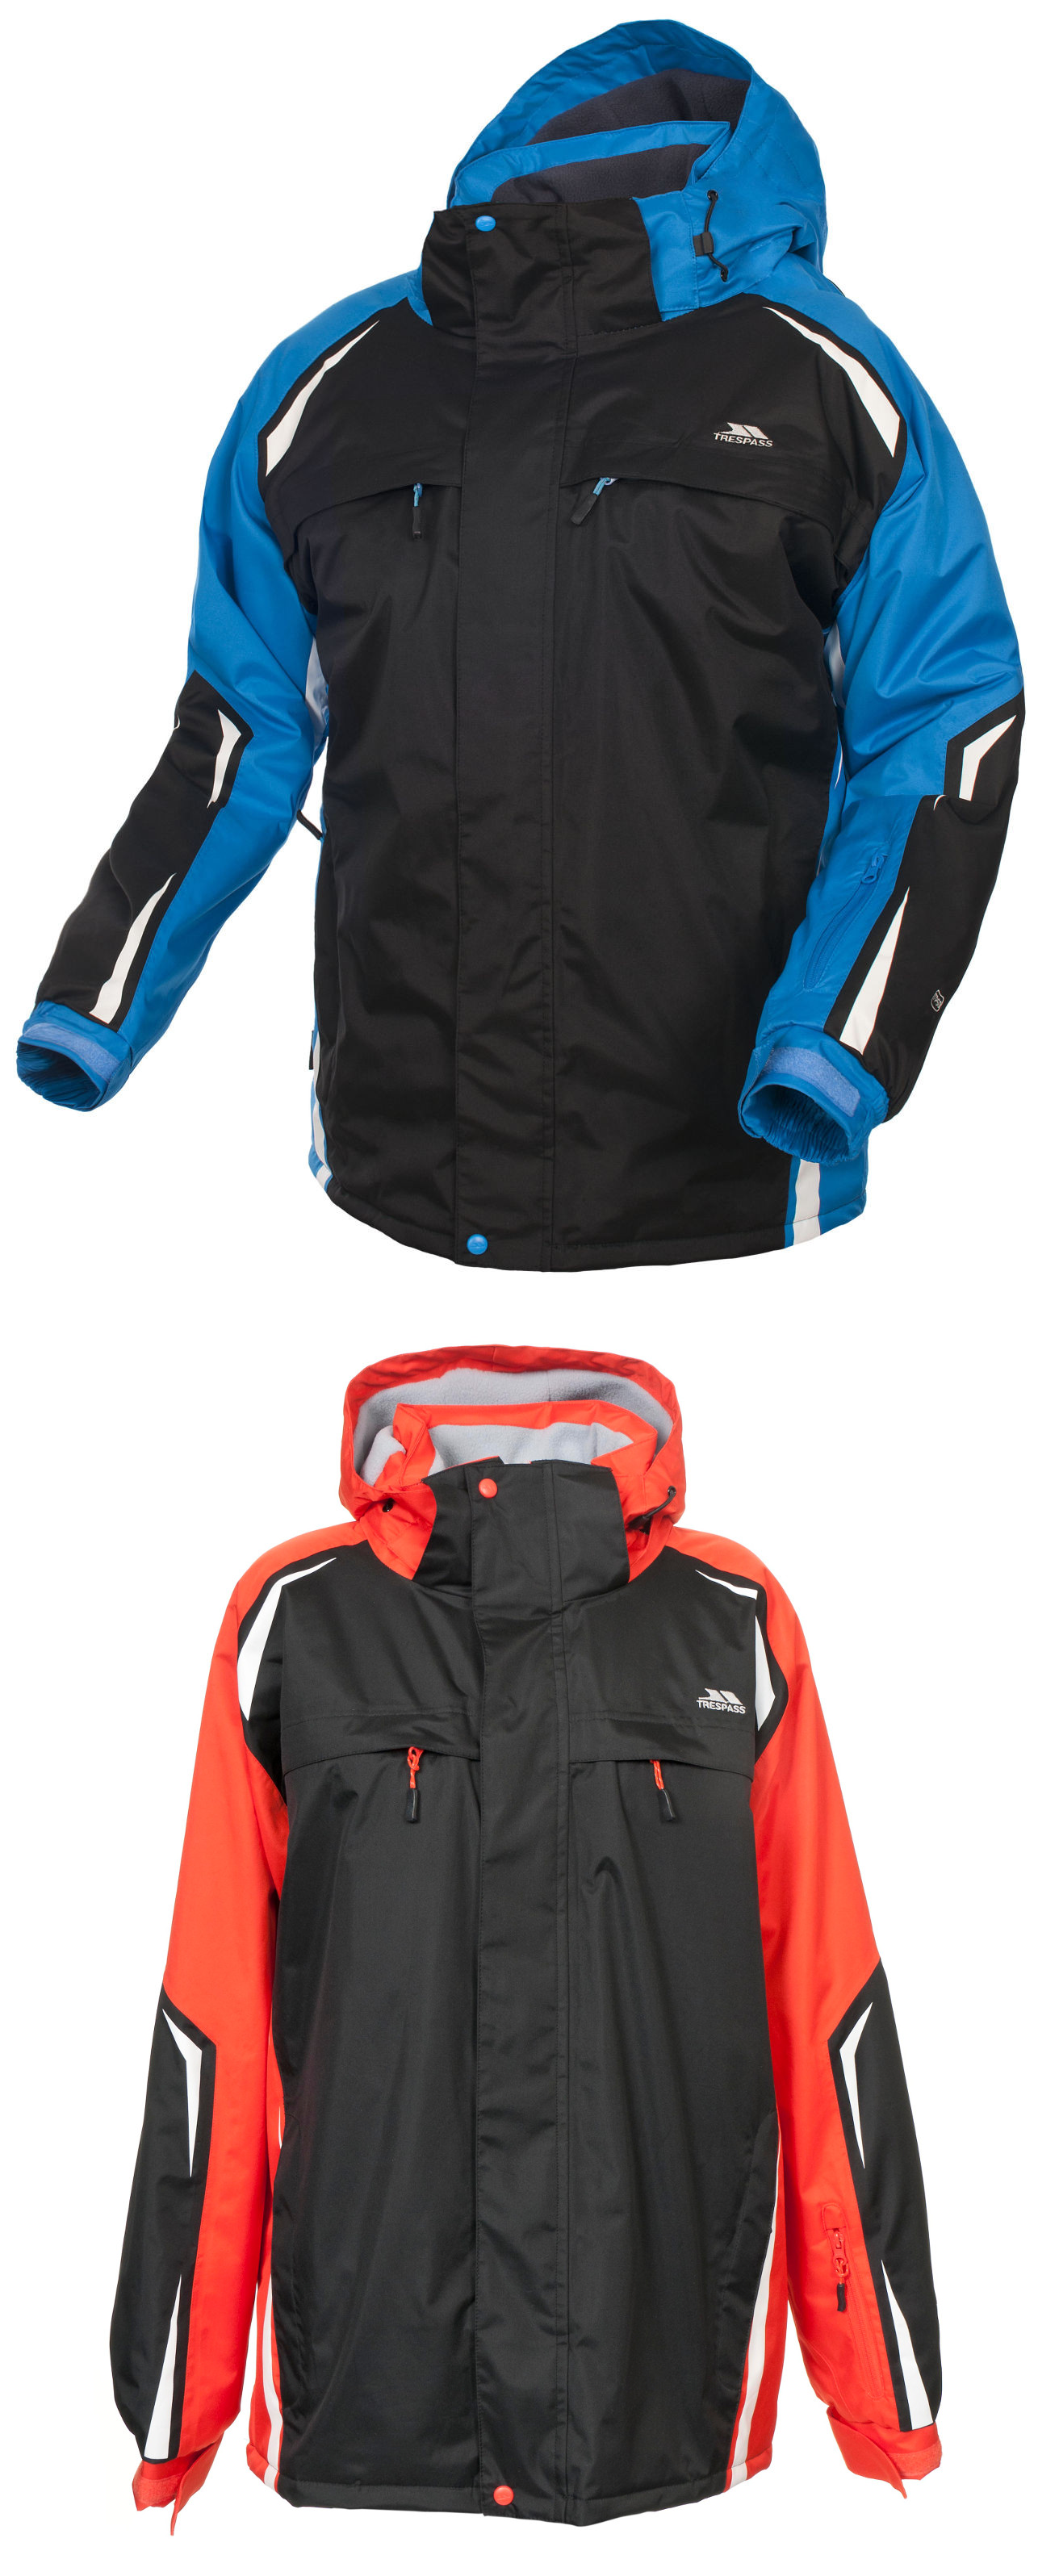 herren trespass thermo wasserfest ski jacke schwarz blau orange gr e xxs xxl ebay. Black Bedroom Furniture Sets. Home Design Ideas